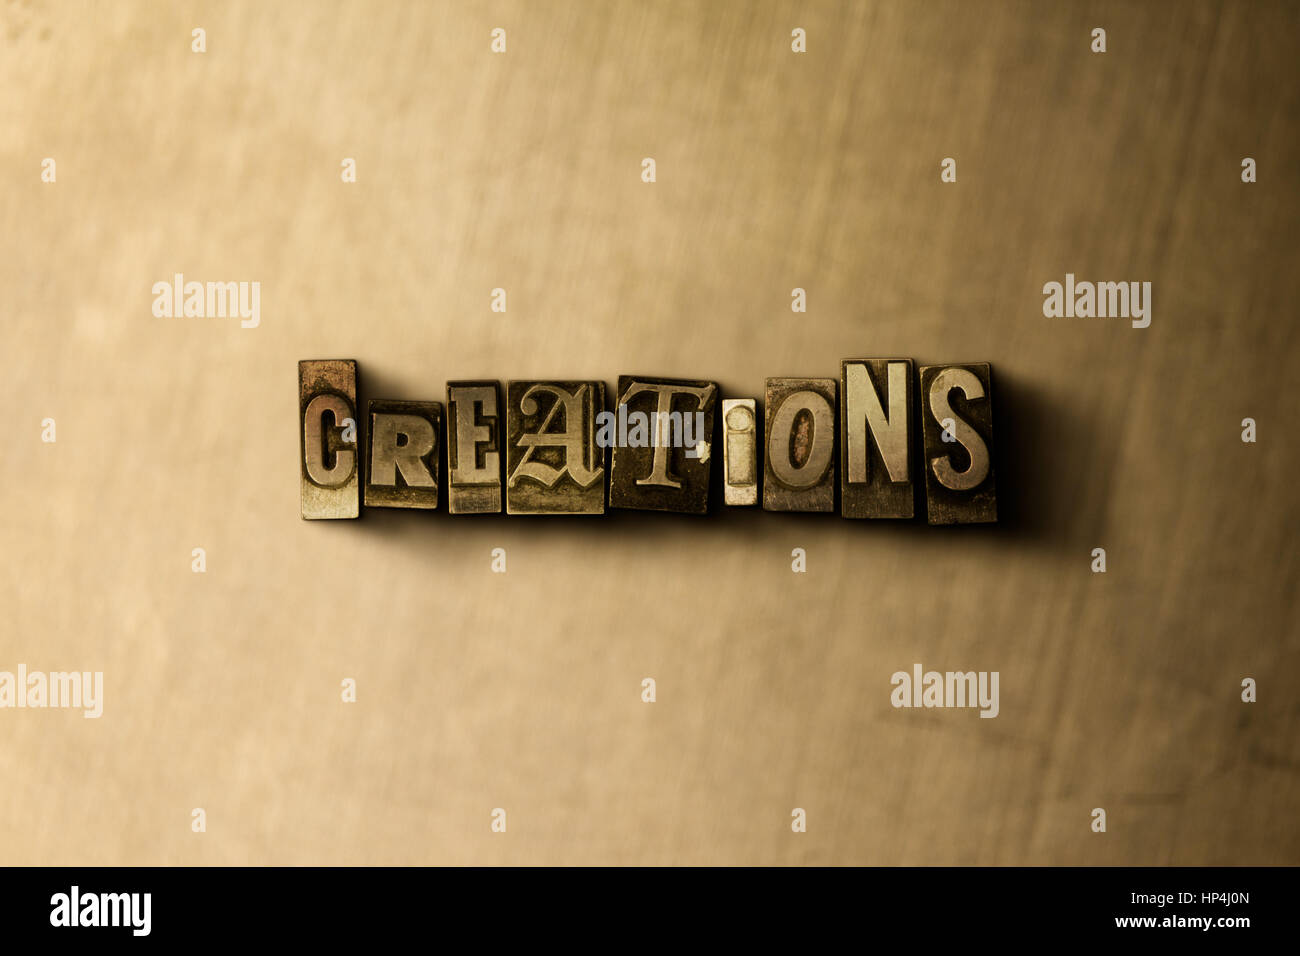 CREATIONS - close-up of grungy vintage typeset word on metal backdrop. Royalty free stock illustration.  Can be - Stock Image